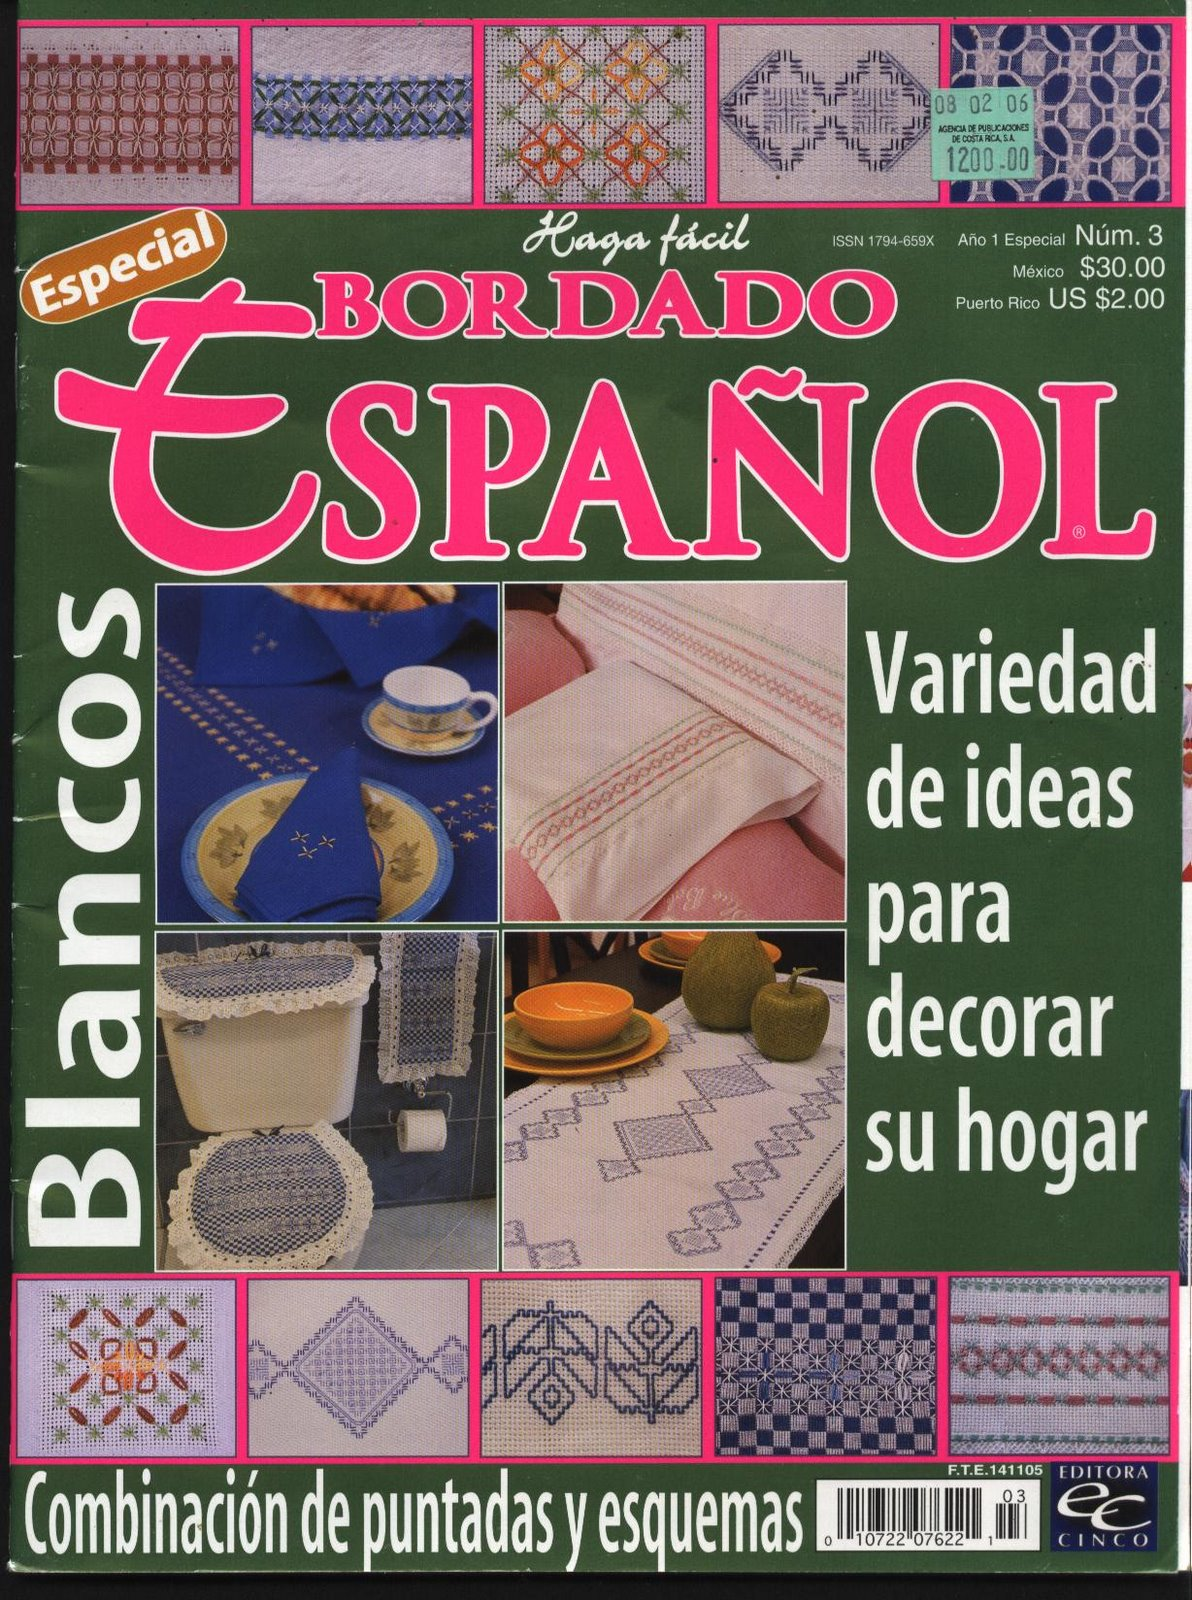 Crochet Magazine En Espanol : Download image Revistas En Espanol Gratis PC, Android, iPhone and iPad ...